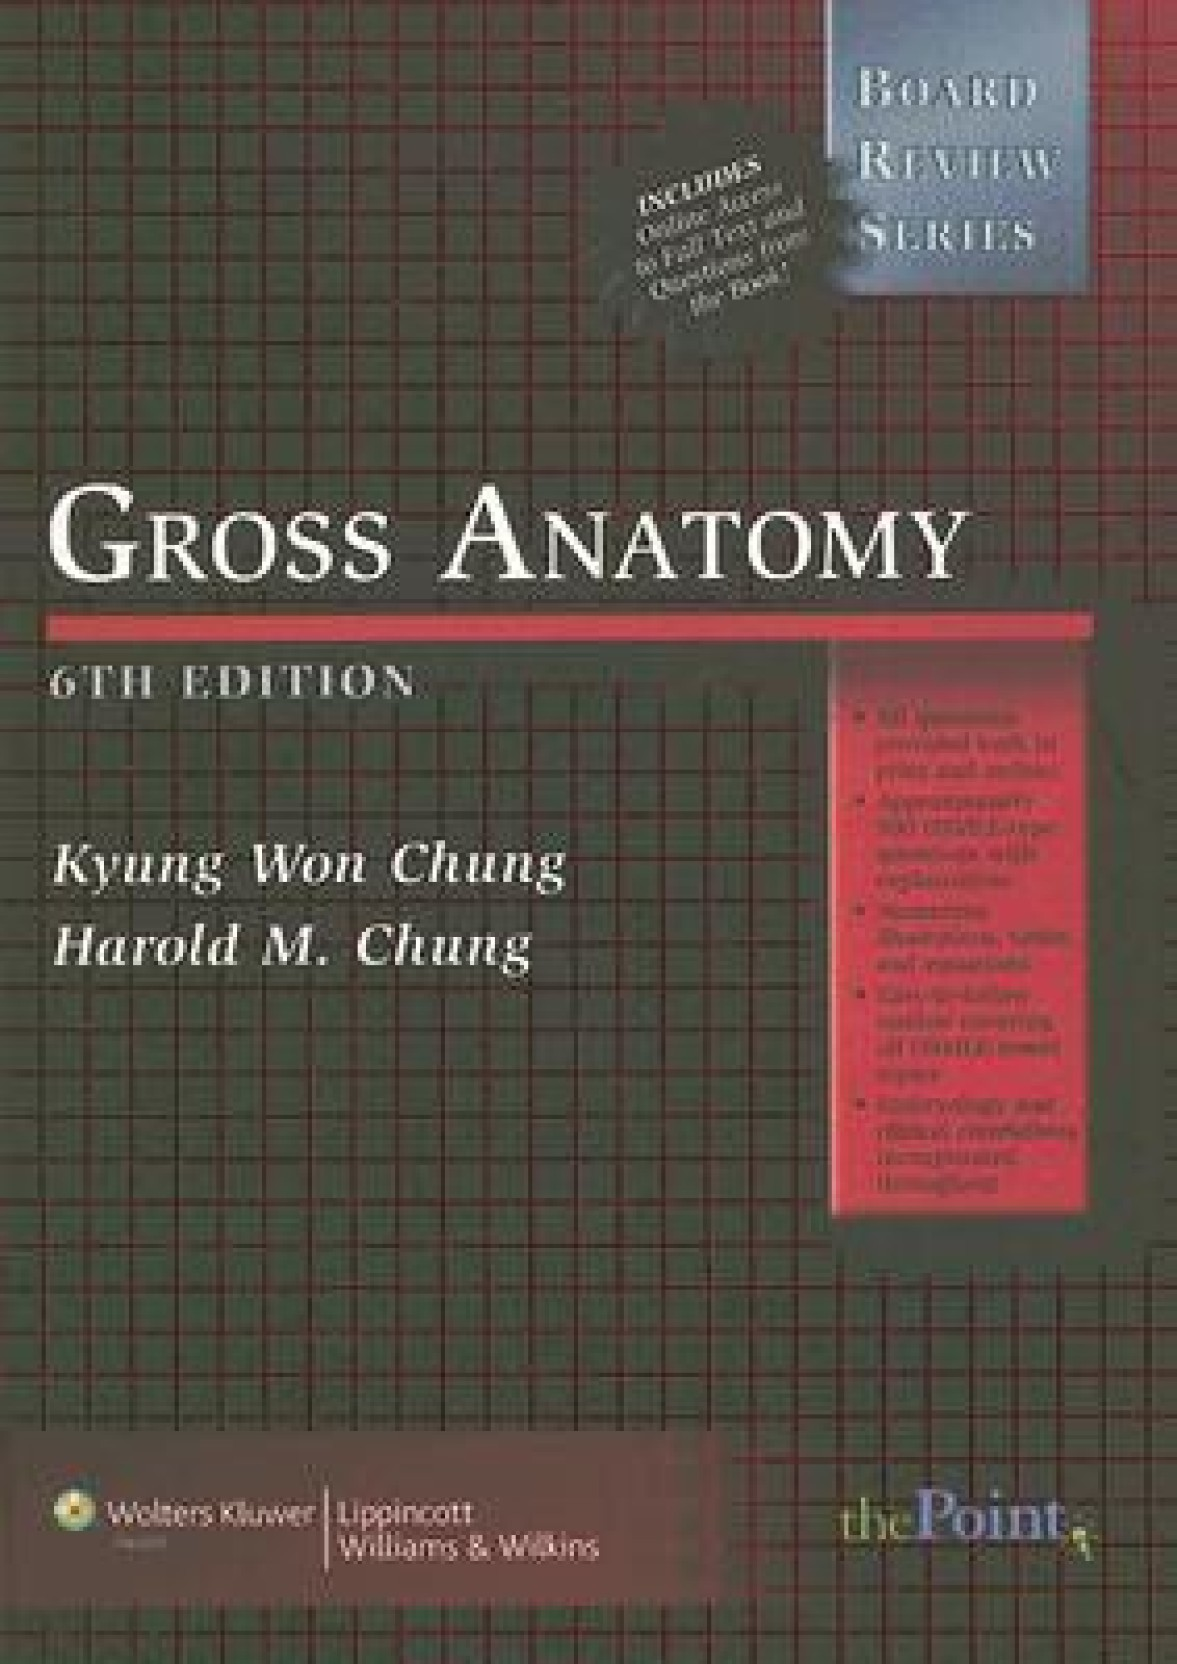 BRS Gross Anatomy (Board Review) (Board Review Series) 6 2nd Edition ...